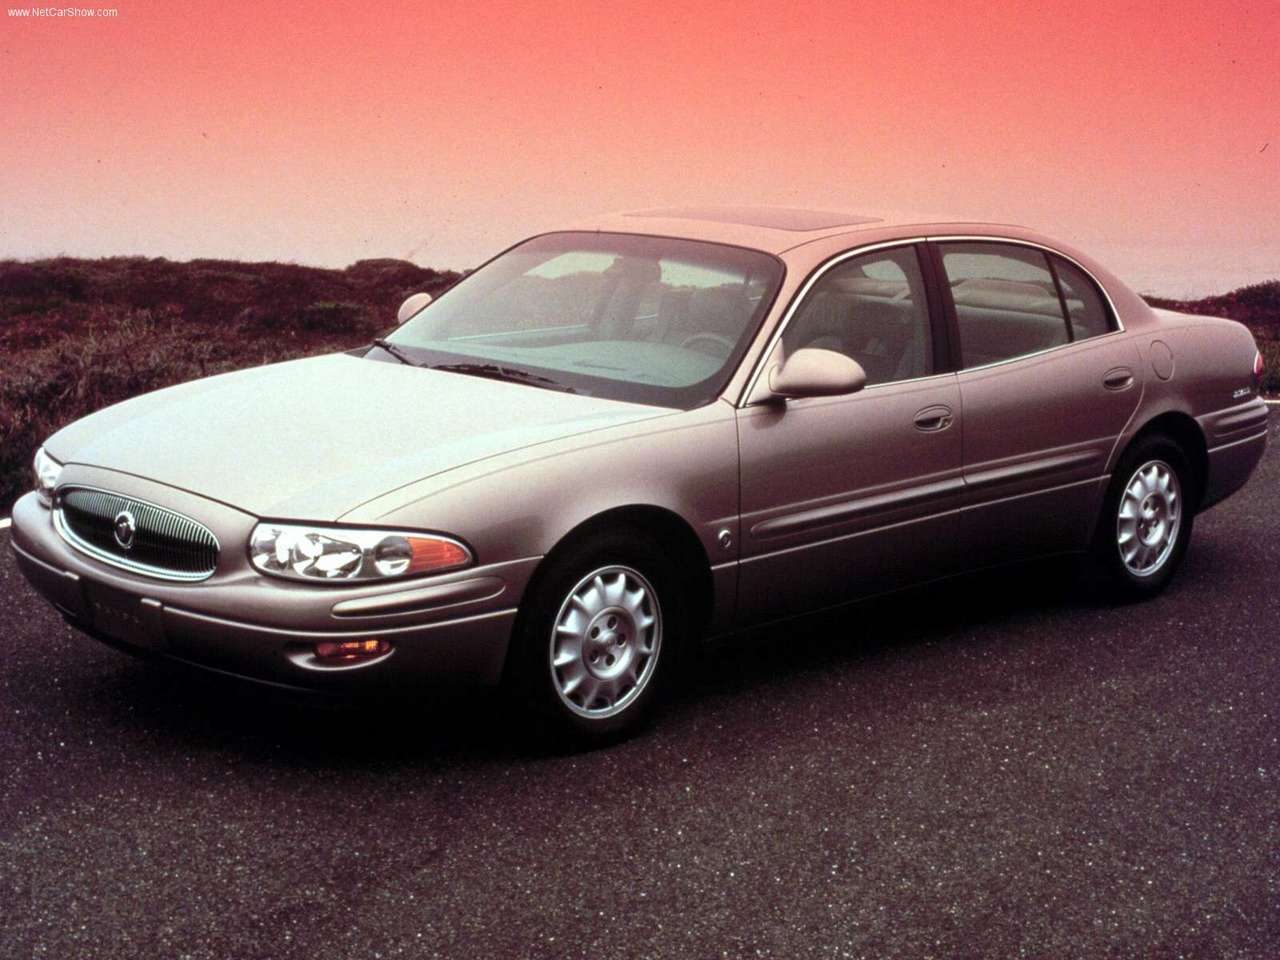 Buick Lesabre Limited X Wallpaper on 2000 Buick Lesabre Limited Edition